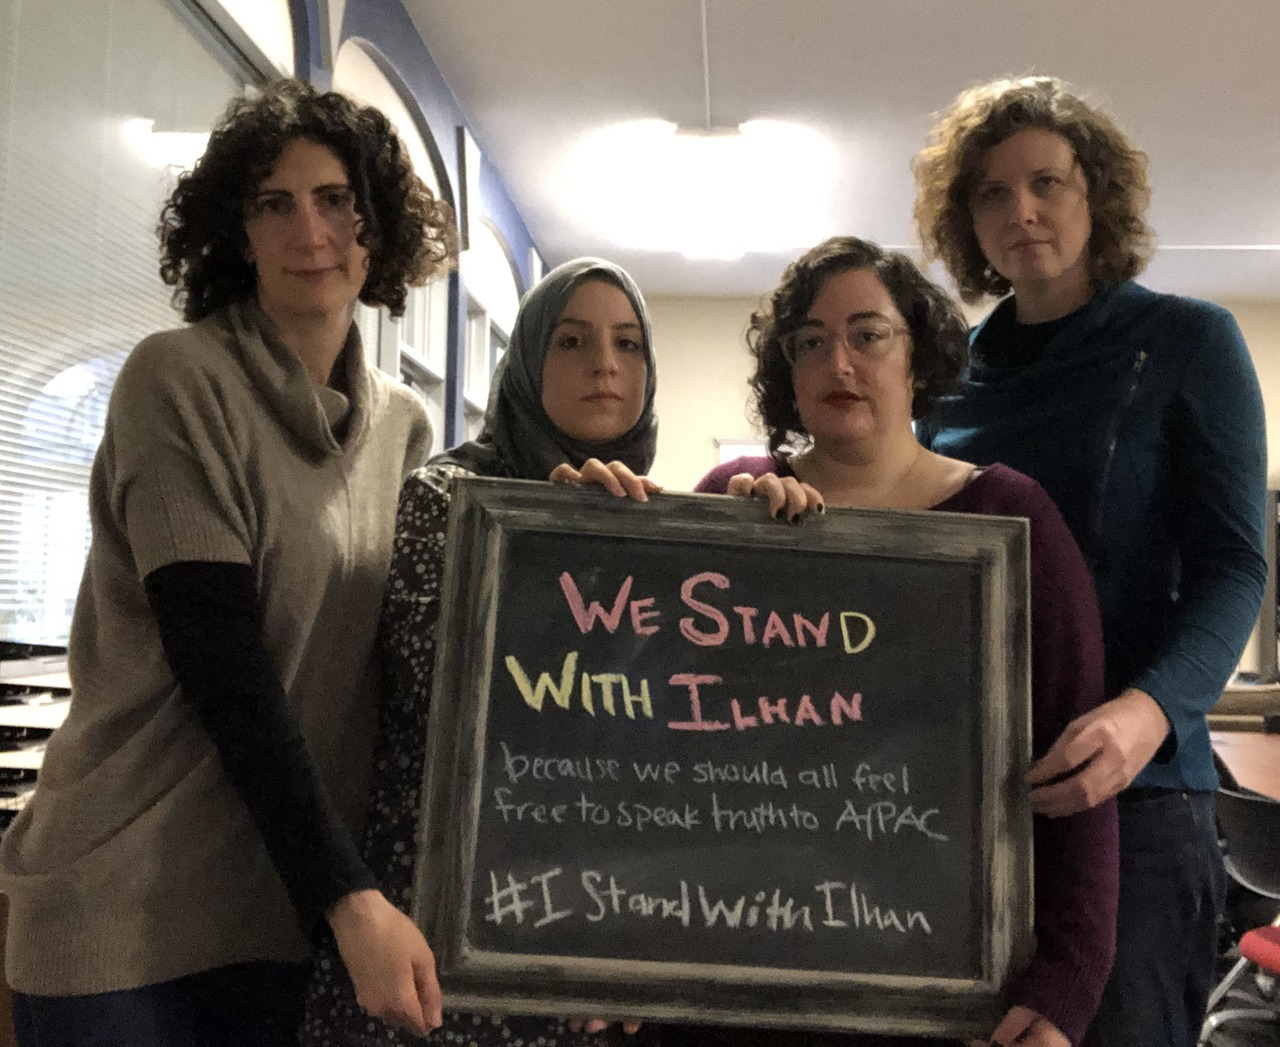 Our Bay Area staff attorneys join Jewish Voice for Peace to #StandWithIlhan.